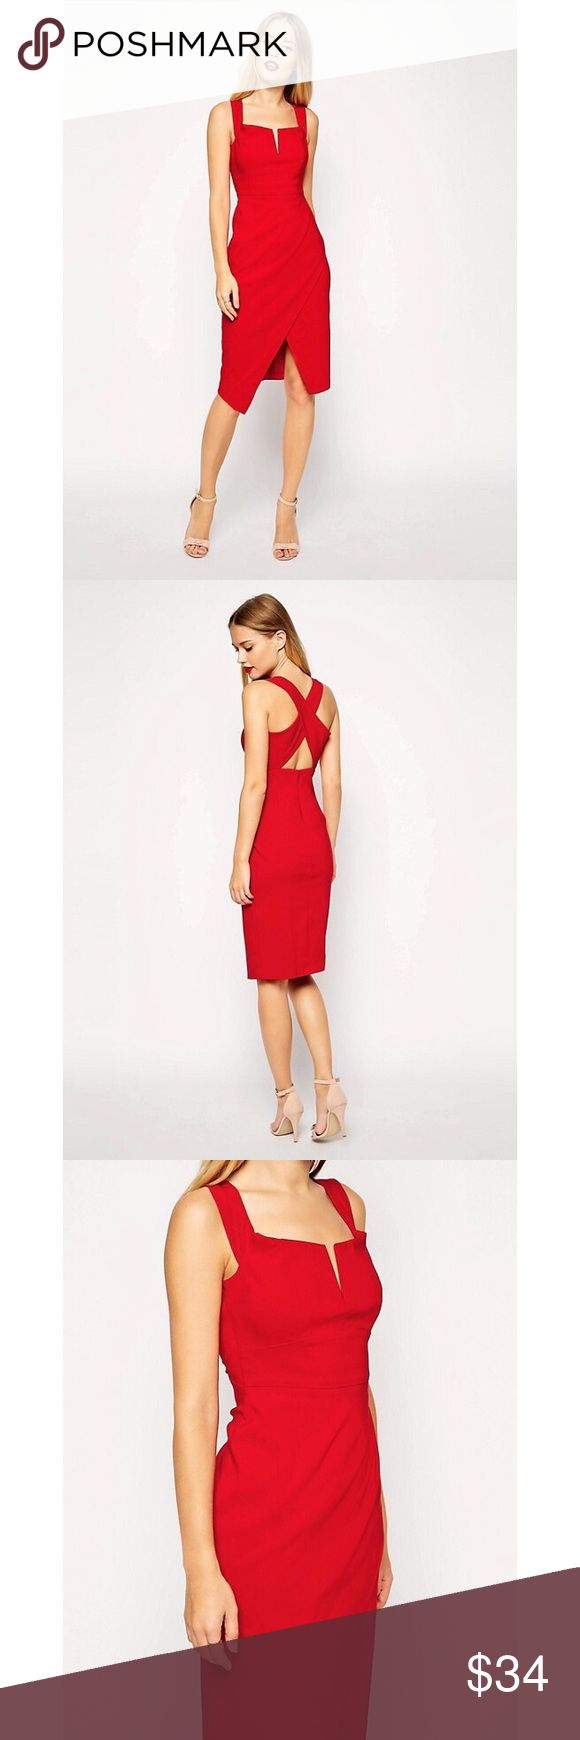 ASOS Red Criss-Crossed Back Wrap Dress Every woman has to have the perfect red dress! This one has a beautiful slit in the chest that is not too revealing, an accentuation of the waist, criss-crossed straps on the back. The bottom features a wrap style....super flattering! ASOS Dresses Midi